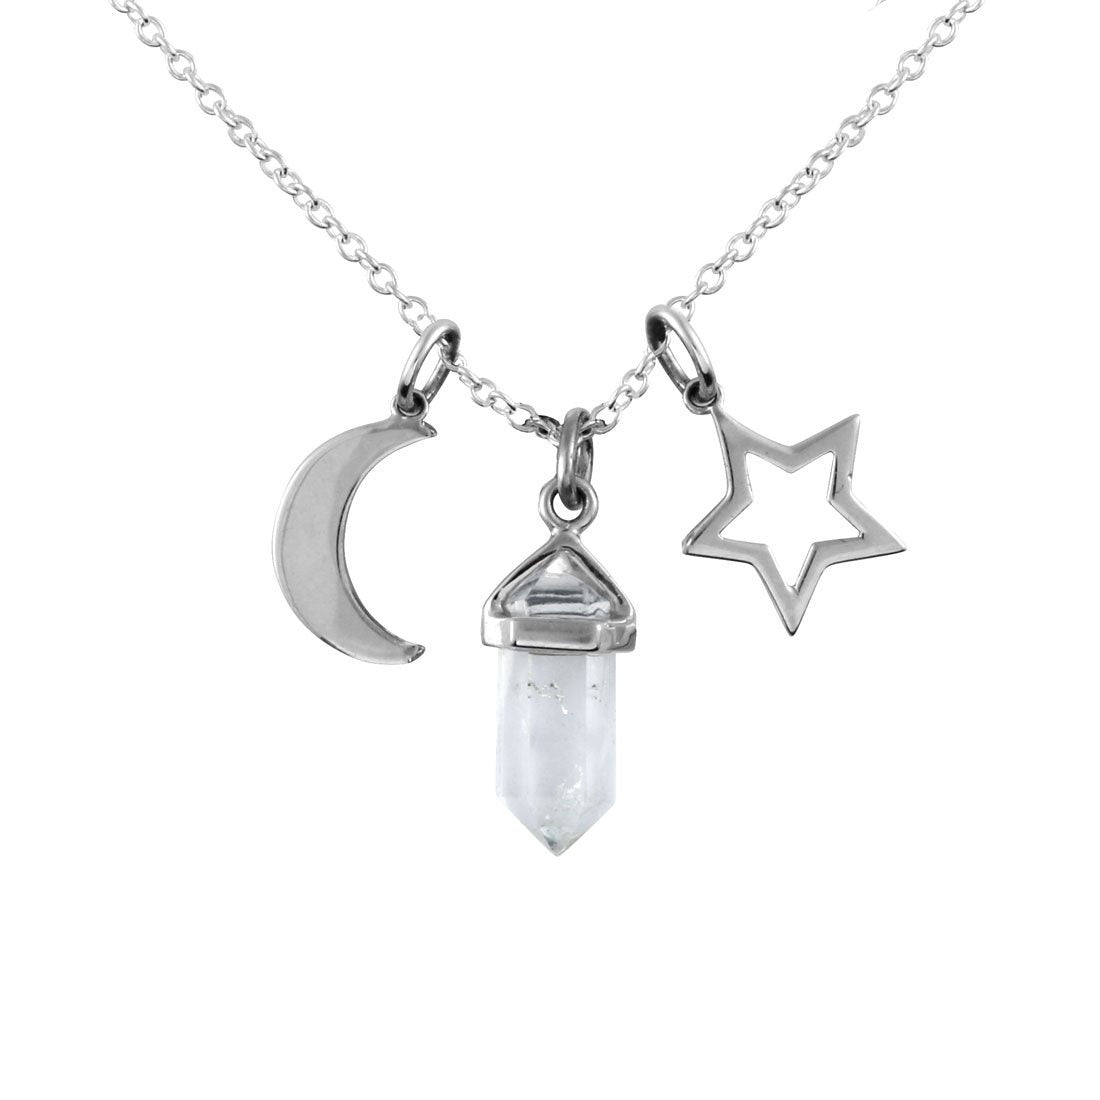 Crystal Moon Star Charm Necklace